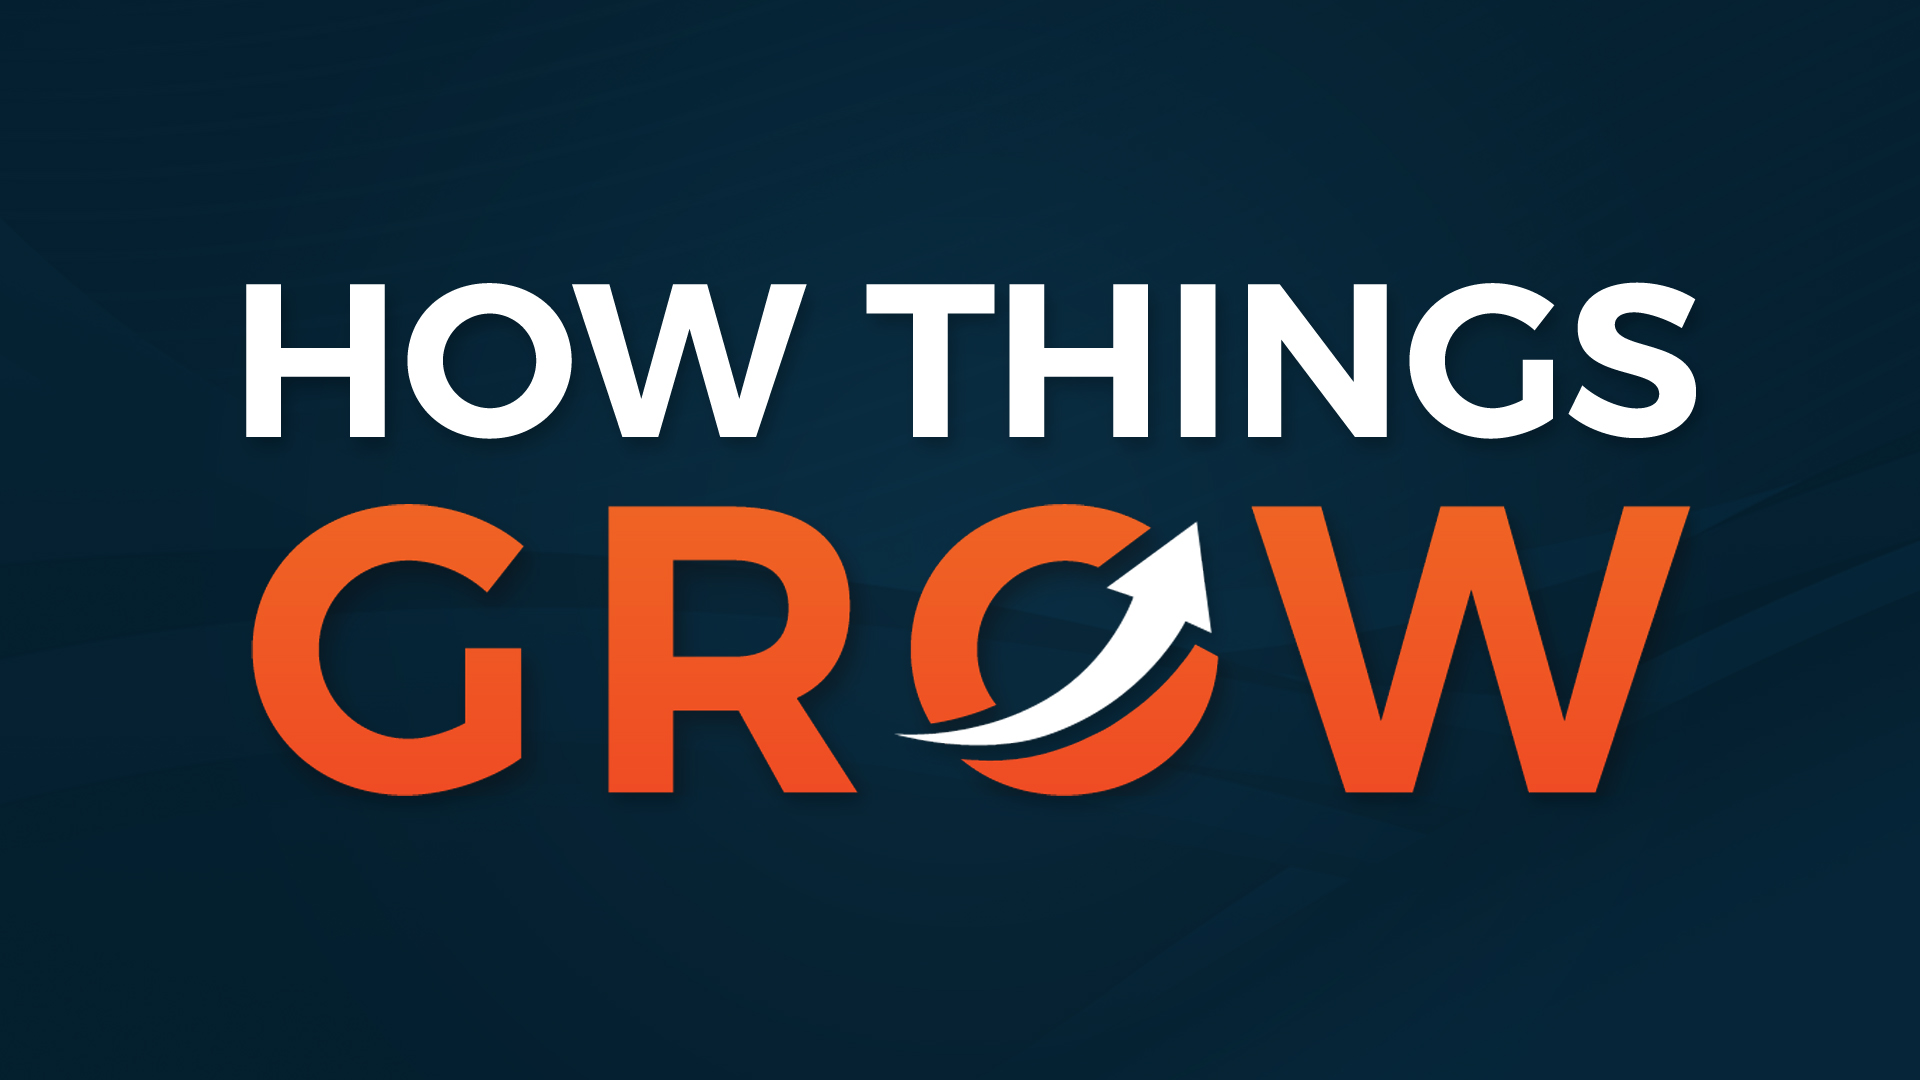 Episodes - The How Things Grow Podcast